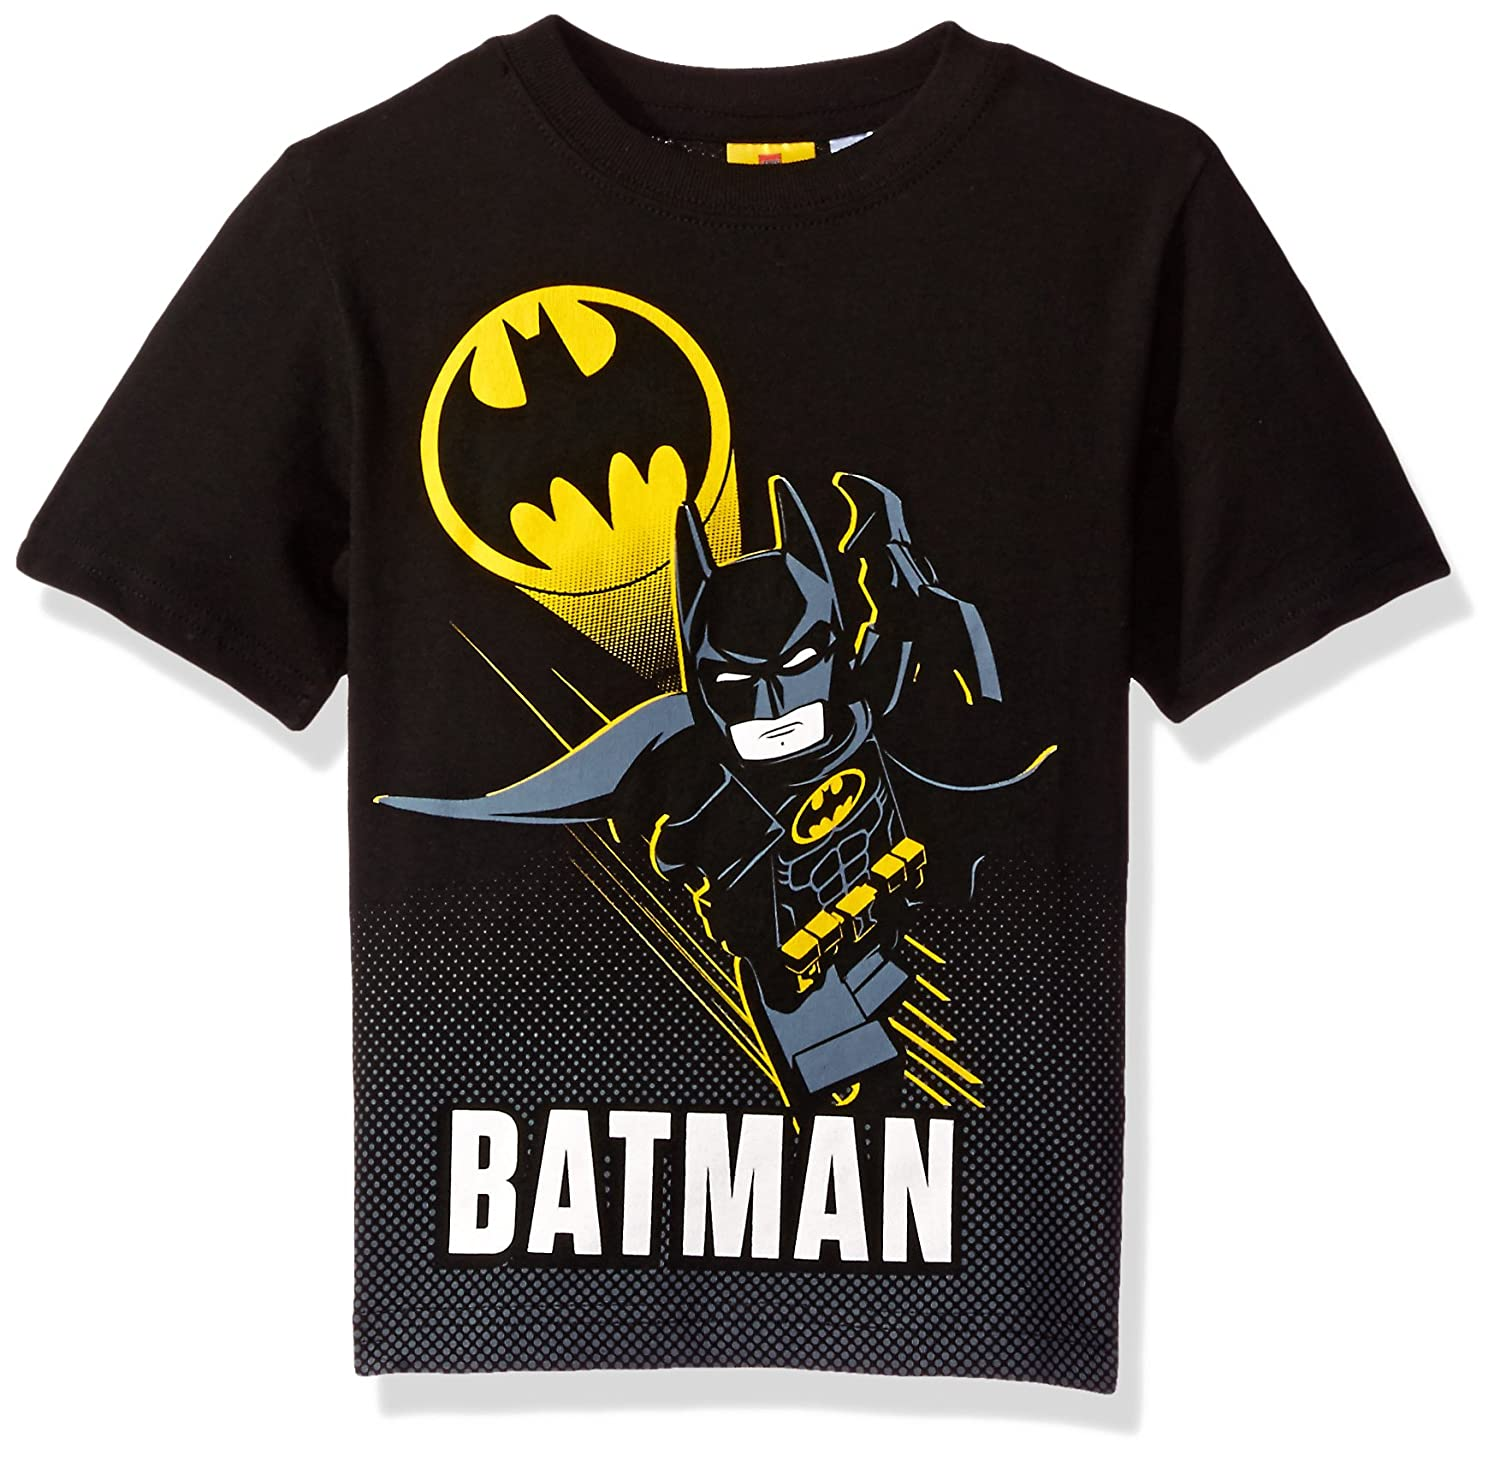 Black t shirt batman - Amazon Com Dc Comics Boys Lego Batman T Shirt Fashion T Shirts Clothing